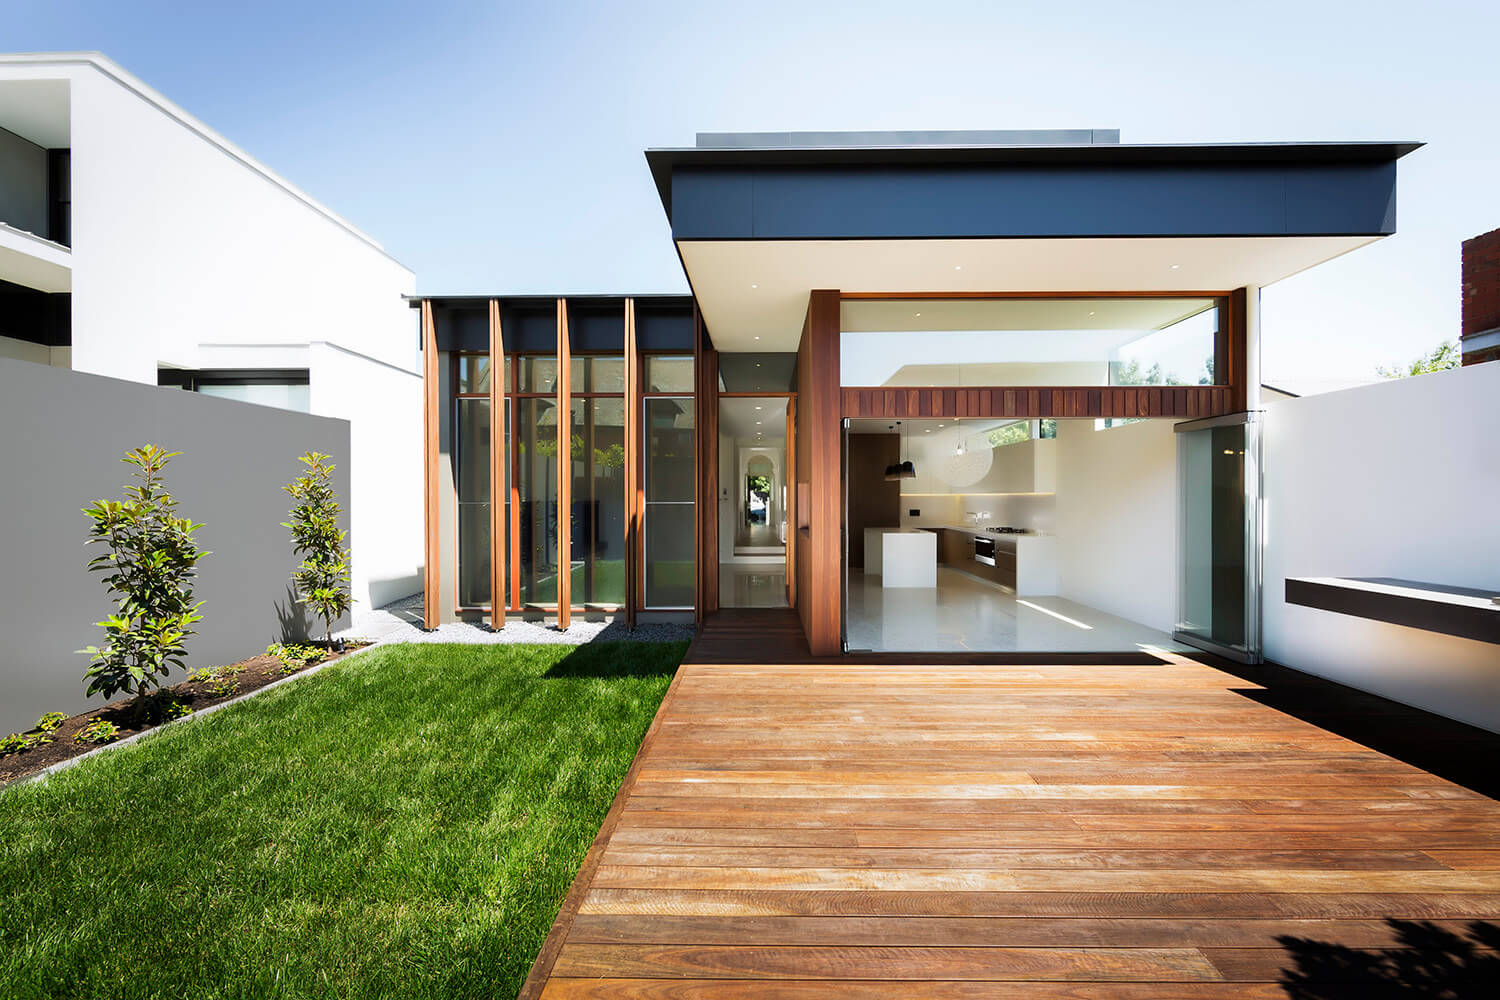 10 Modern One Story House Design Ideas Discover the Current Trends